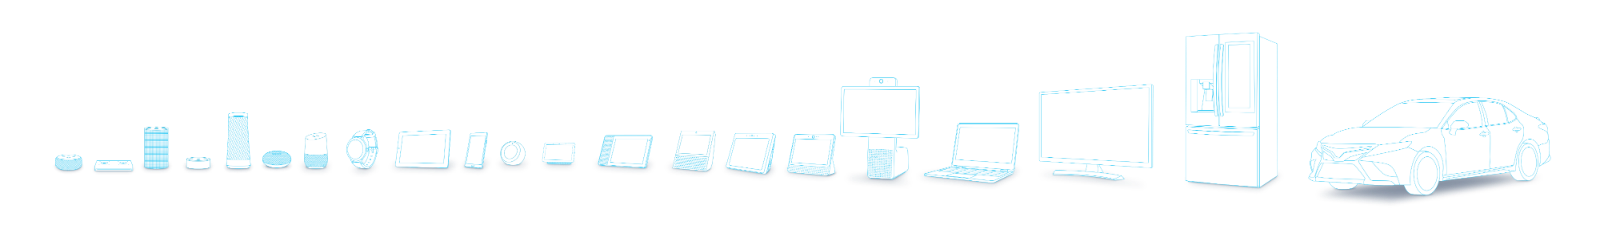 devices-all-float-1